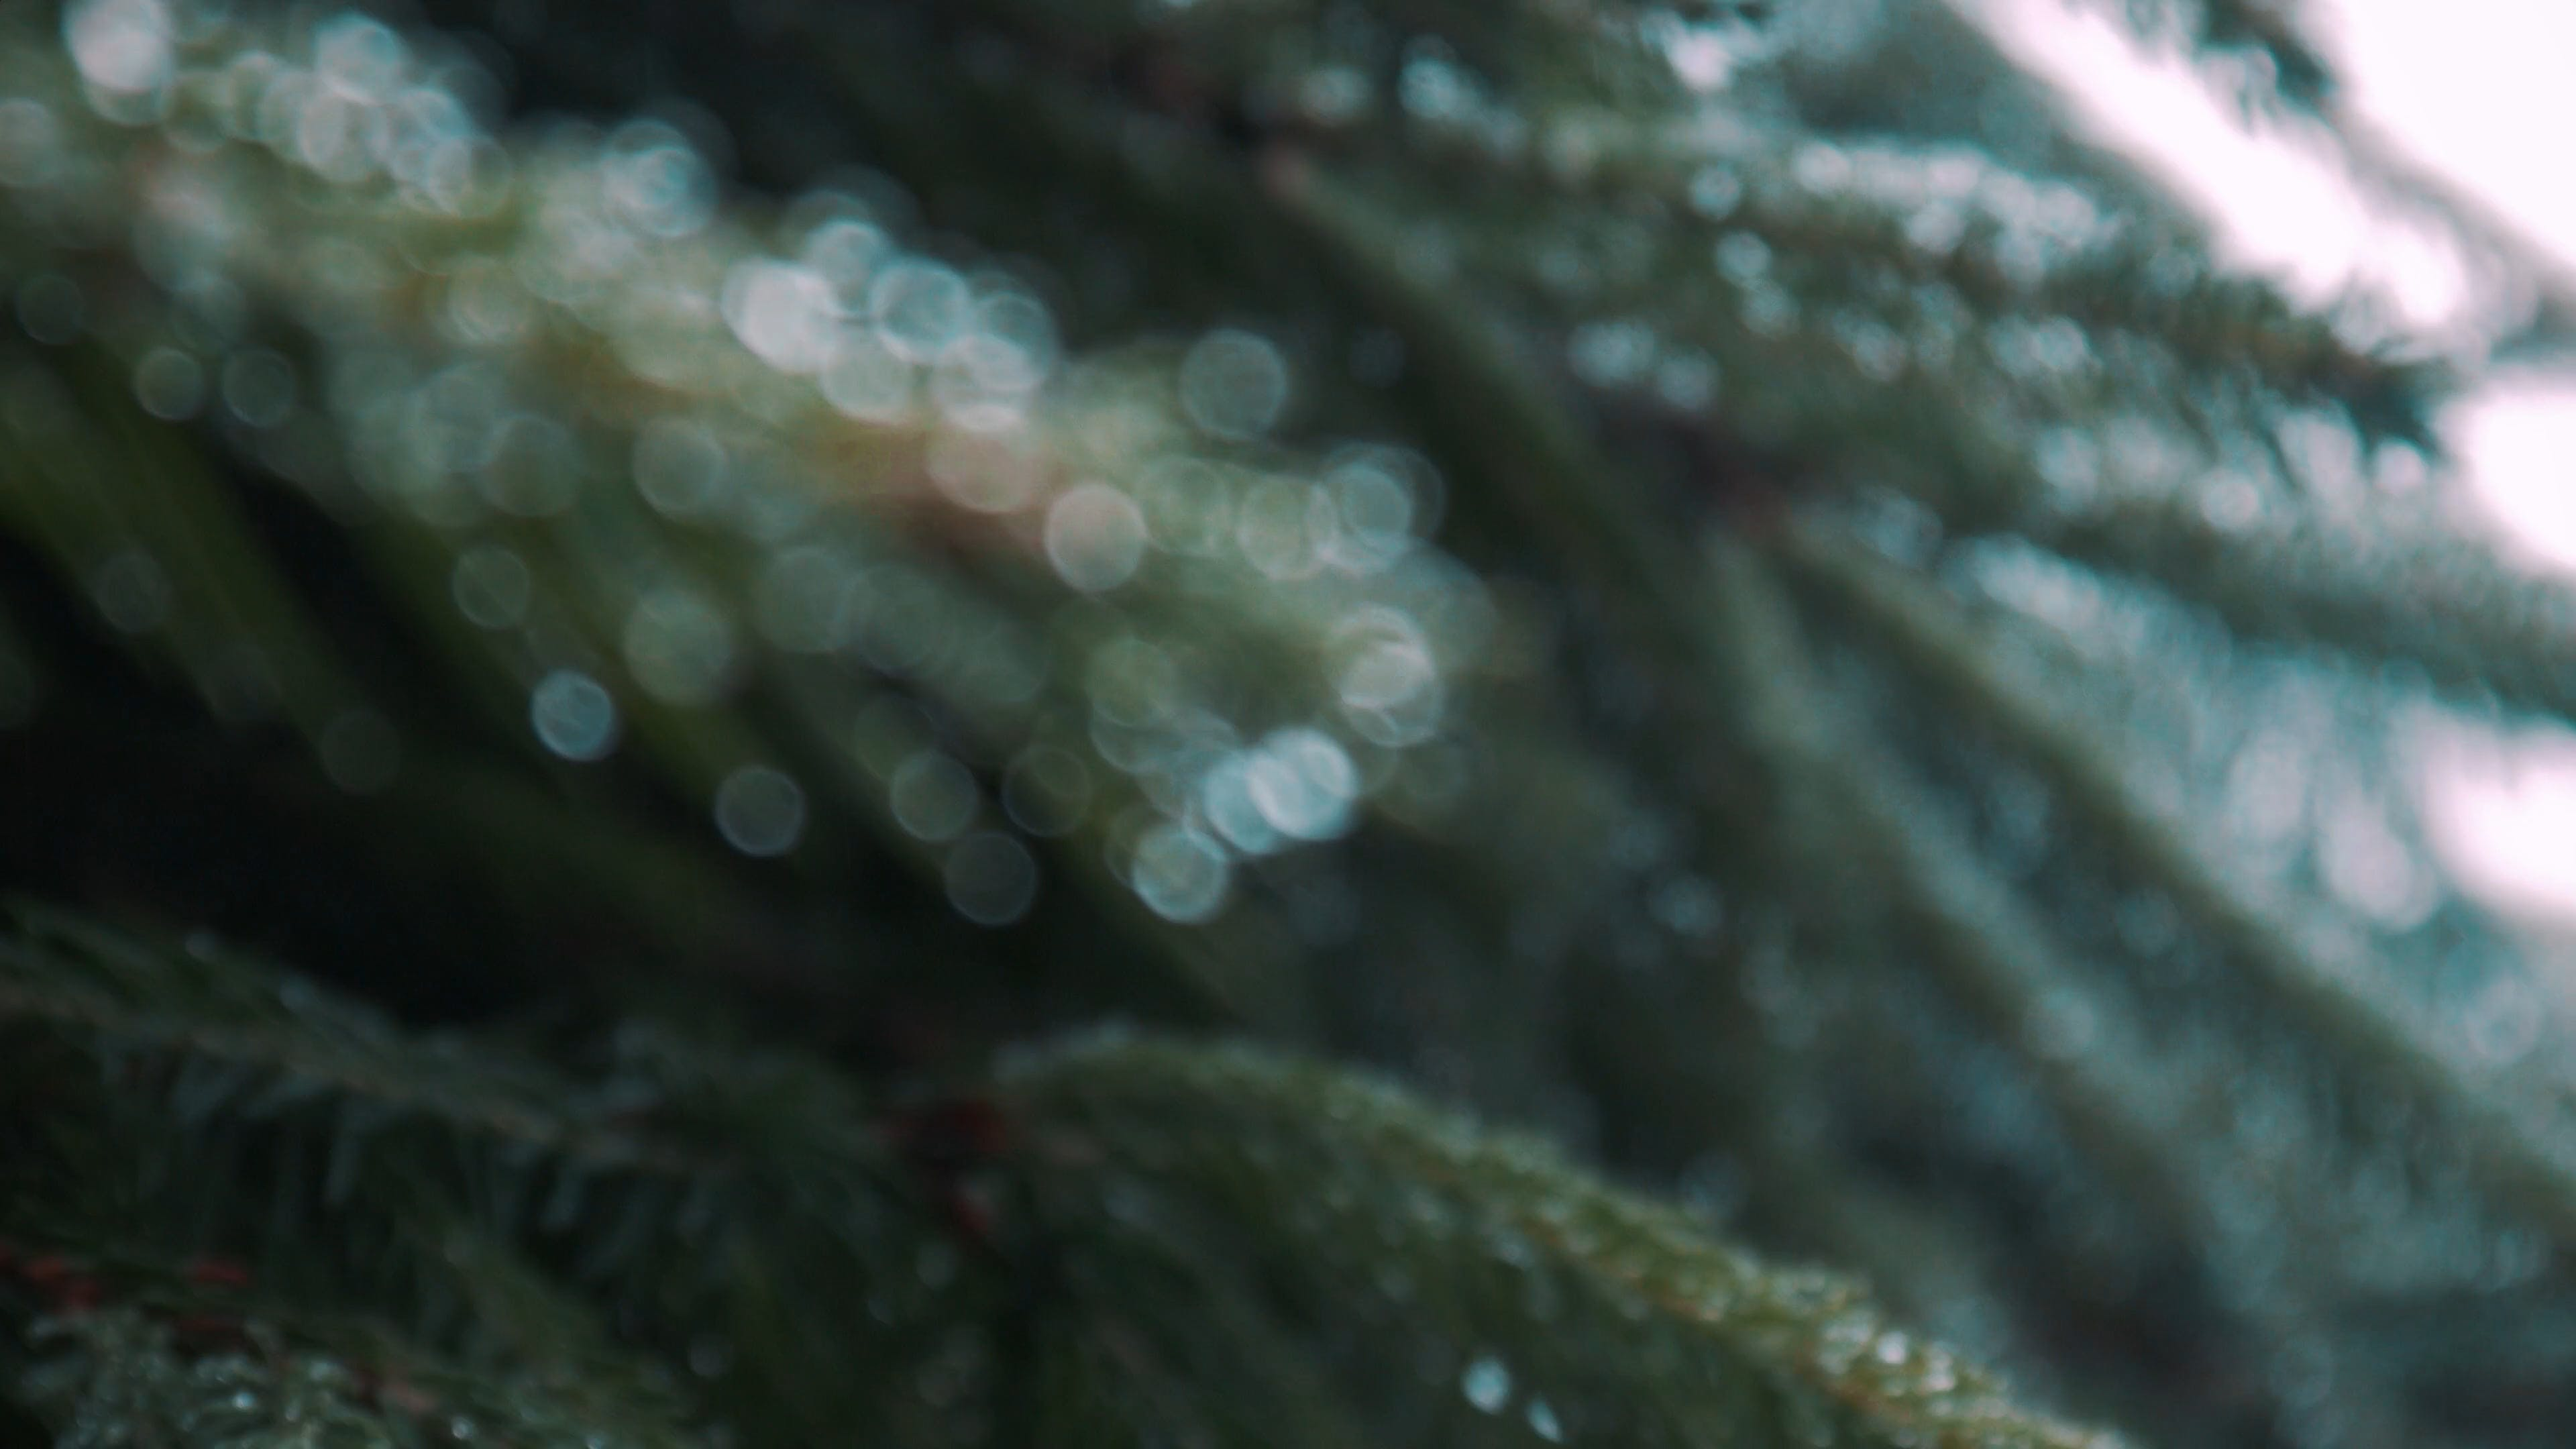 Close-Up View Of Pine Needles With Water Drops